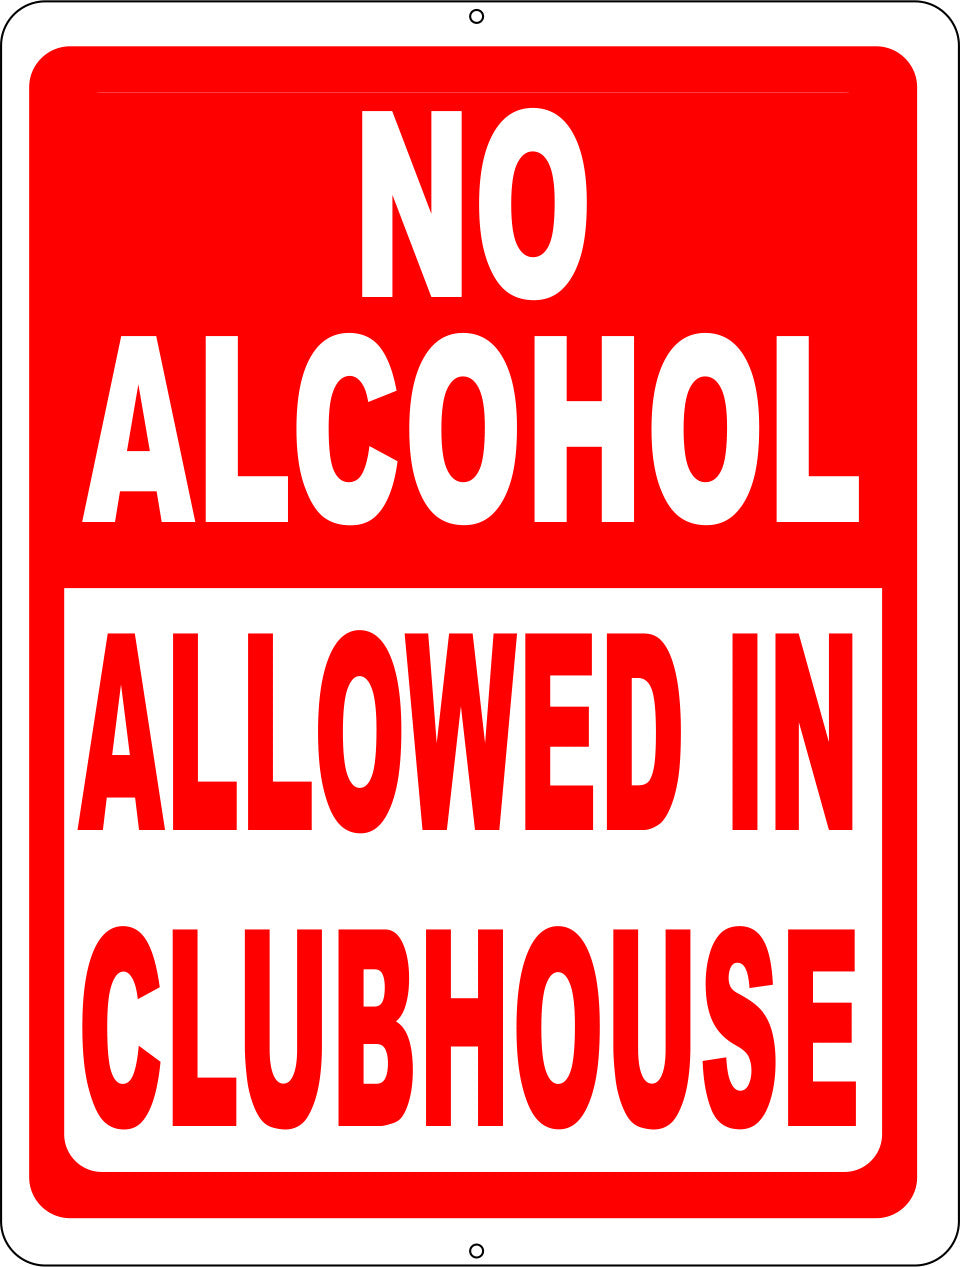 No Alcohol Allowed in Clubhouse Sign - Signs & Decals by SalaGraphics